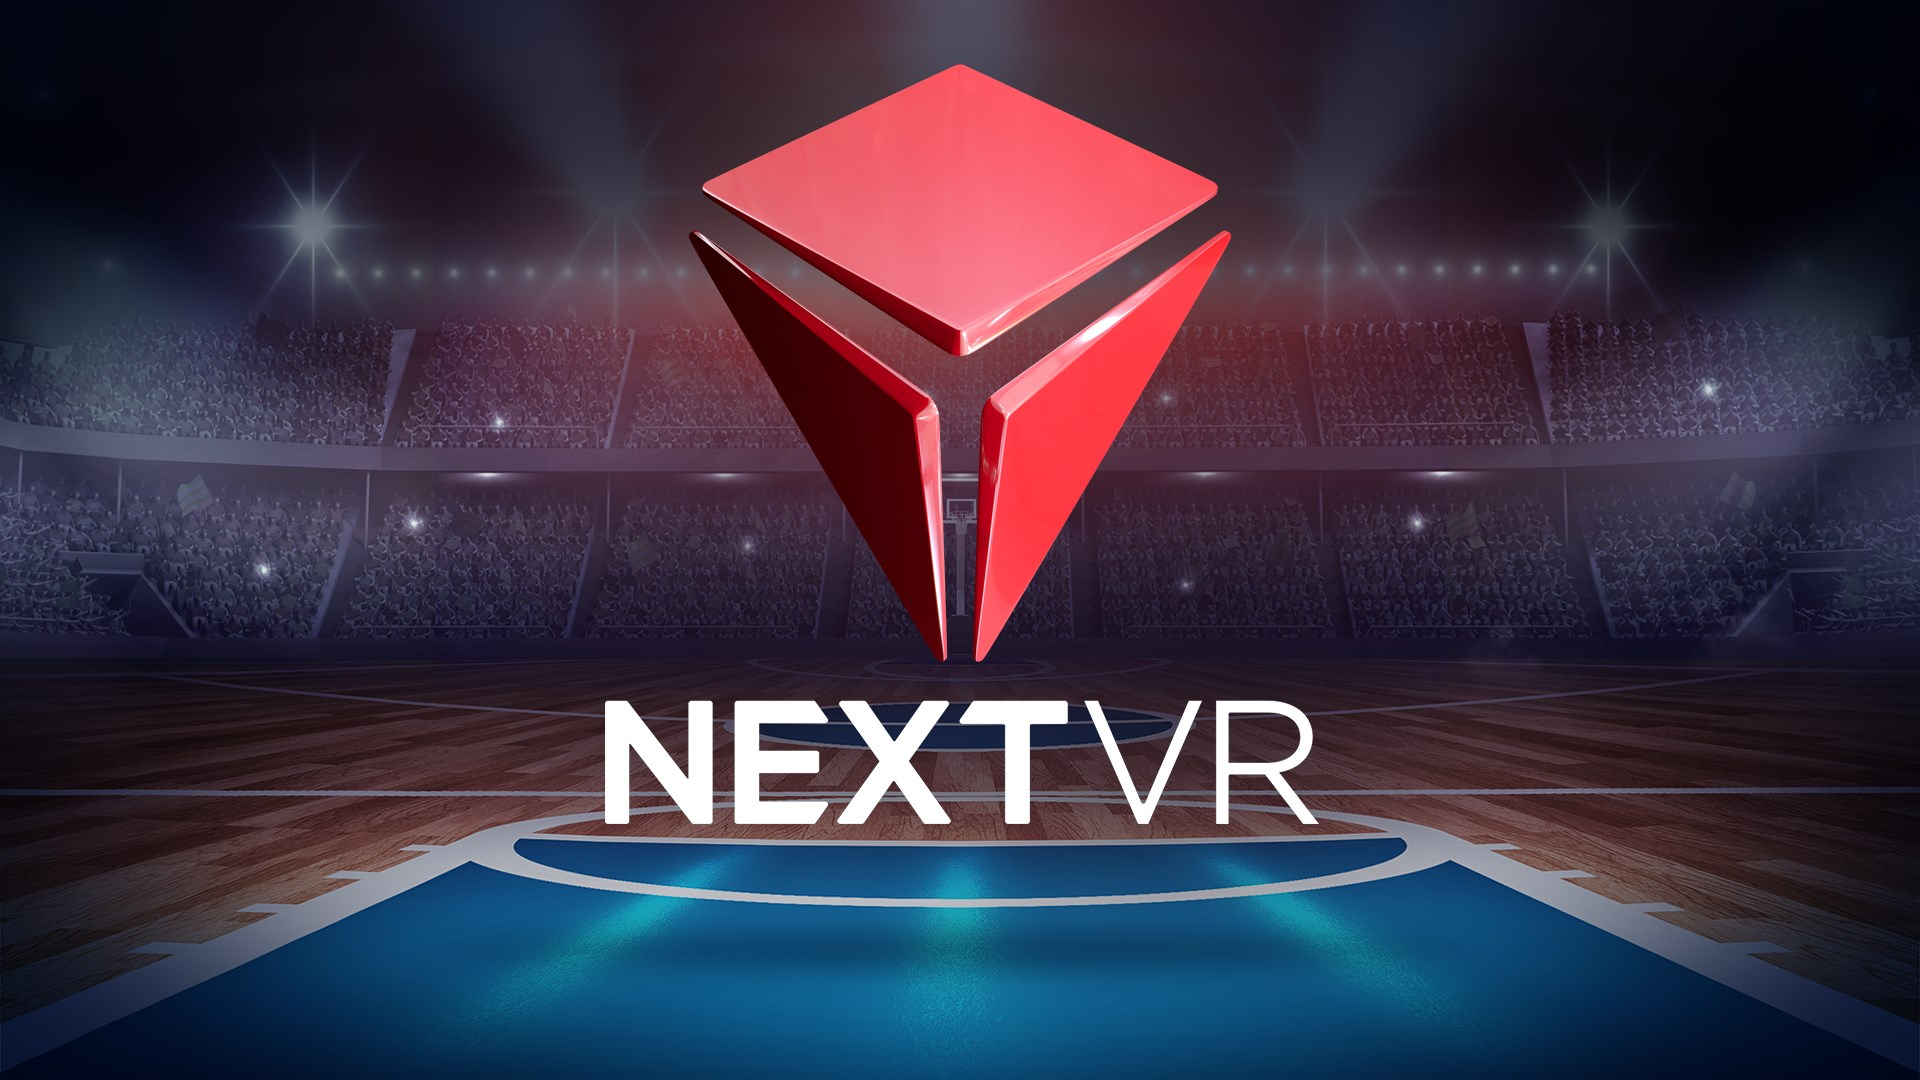 91a8234ee8a Get NextVR - Live Sports and Entertainment in Virtual Reality - Microsoft  Store